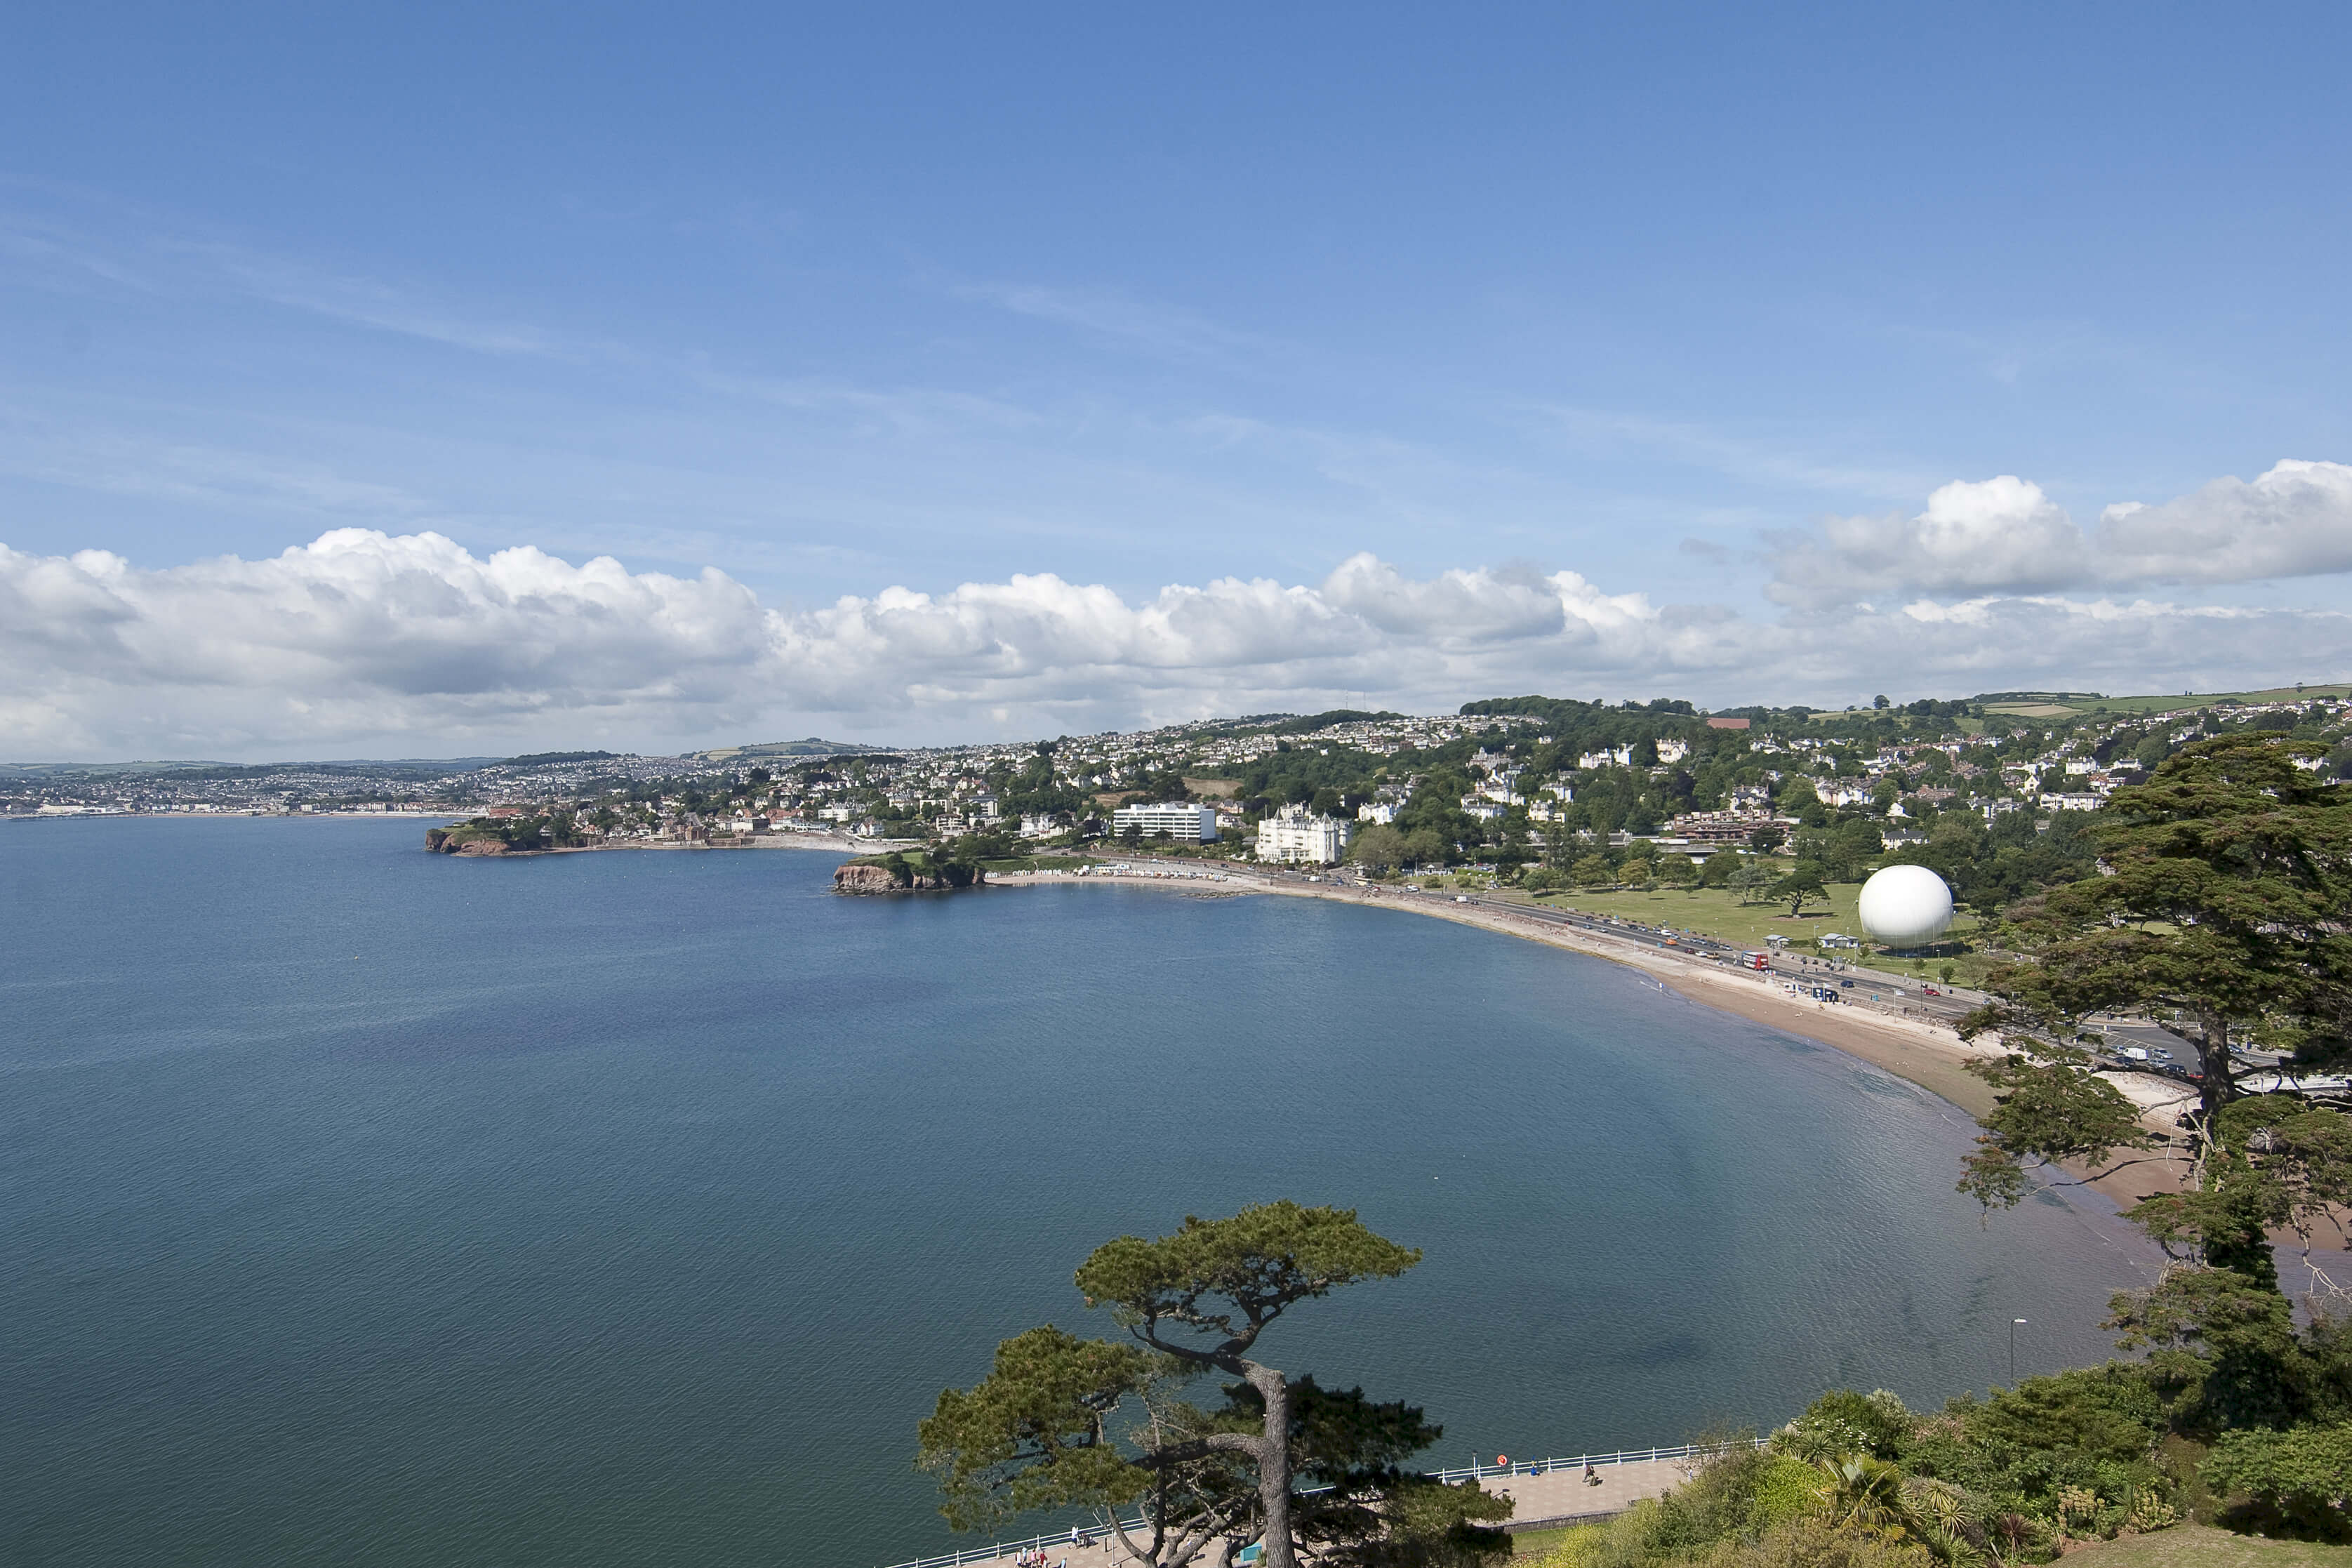 10 Things You (May) Not Know About Devon